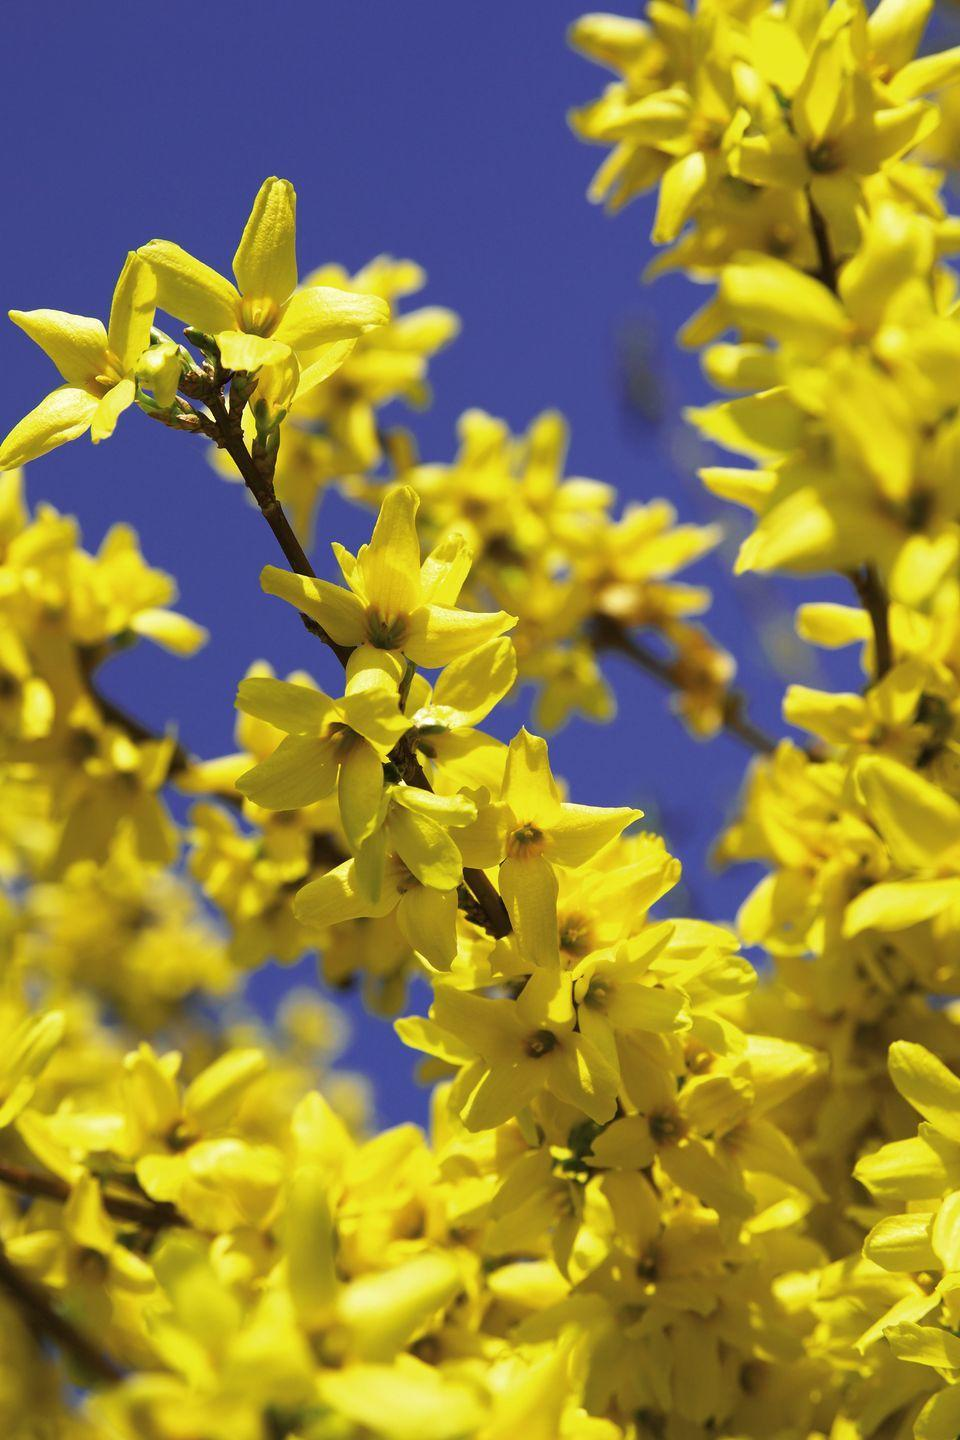 "<p>The bright yellow blooms of forsythia appear in early spring before the shrub leafs out. New hybrids such as Show Off! Sugar Baby stay petite and pretty in small spaces, reaching about 30 inches tall at maturity. Give forsythia full sun. </p><p> <a class=""link rapid-noclick-resp"" href=""https://www.greatgardenplants.com/collections/all/products/show-off-sugar-baby-forsythia?variant=37358180237479"" rel=""nofollow noopener"" target=""_blank"" data-ylk=""slk:SHOP NOW"">SHOP NOW</a></p>"